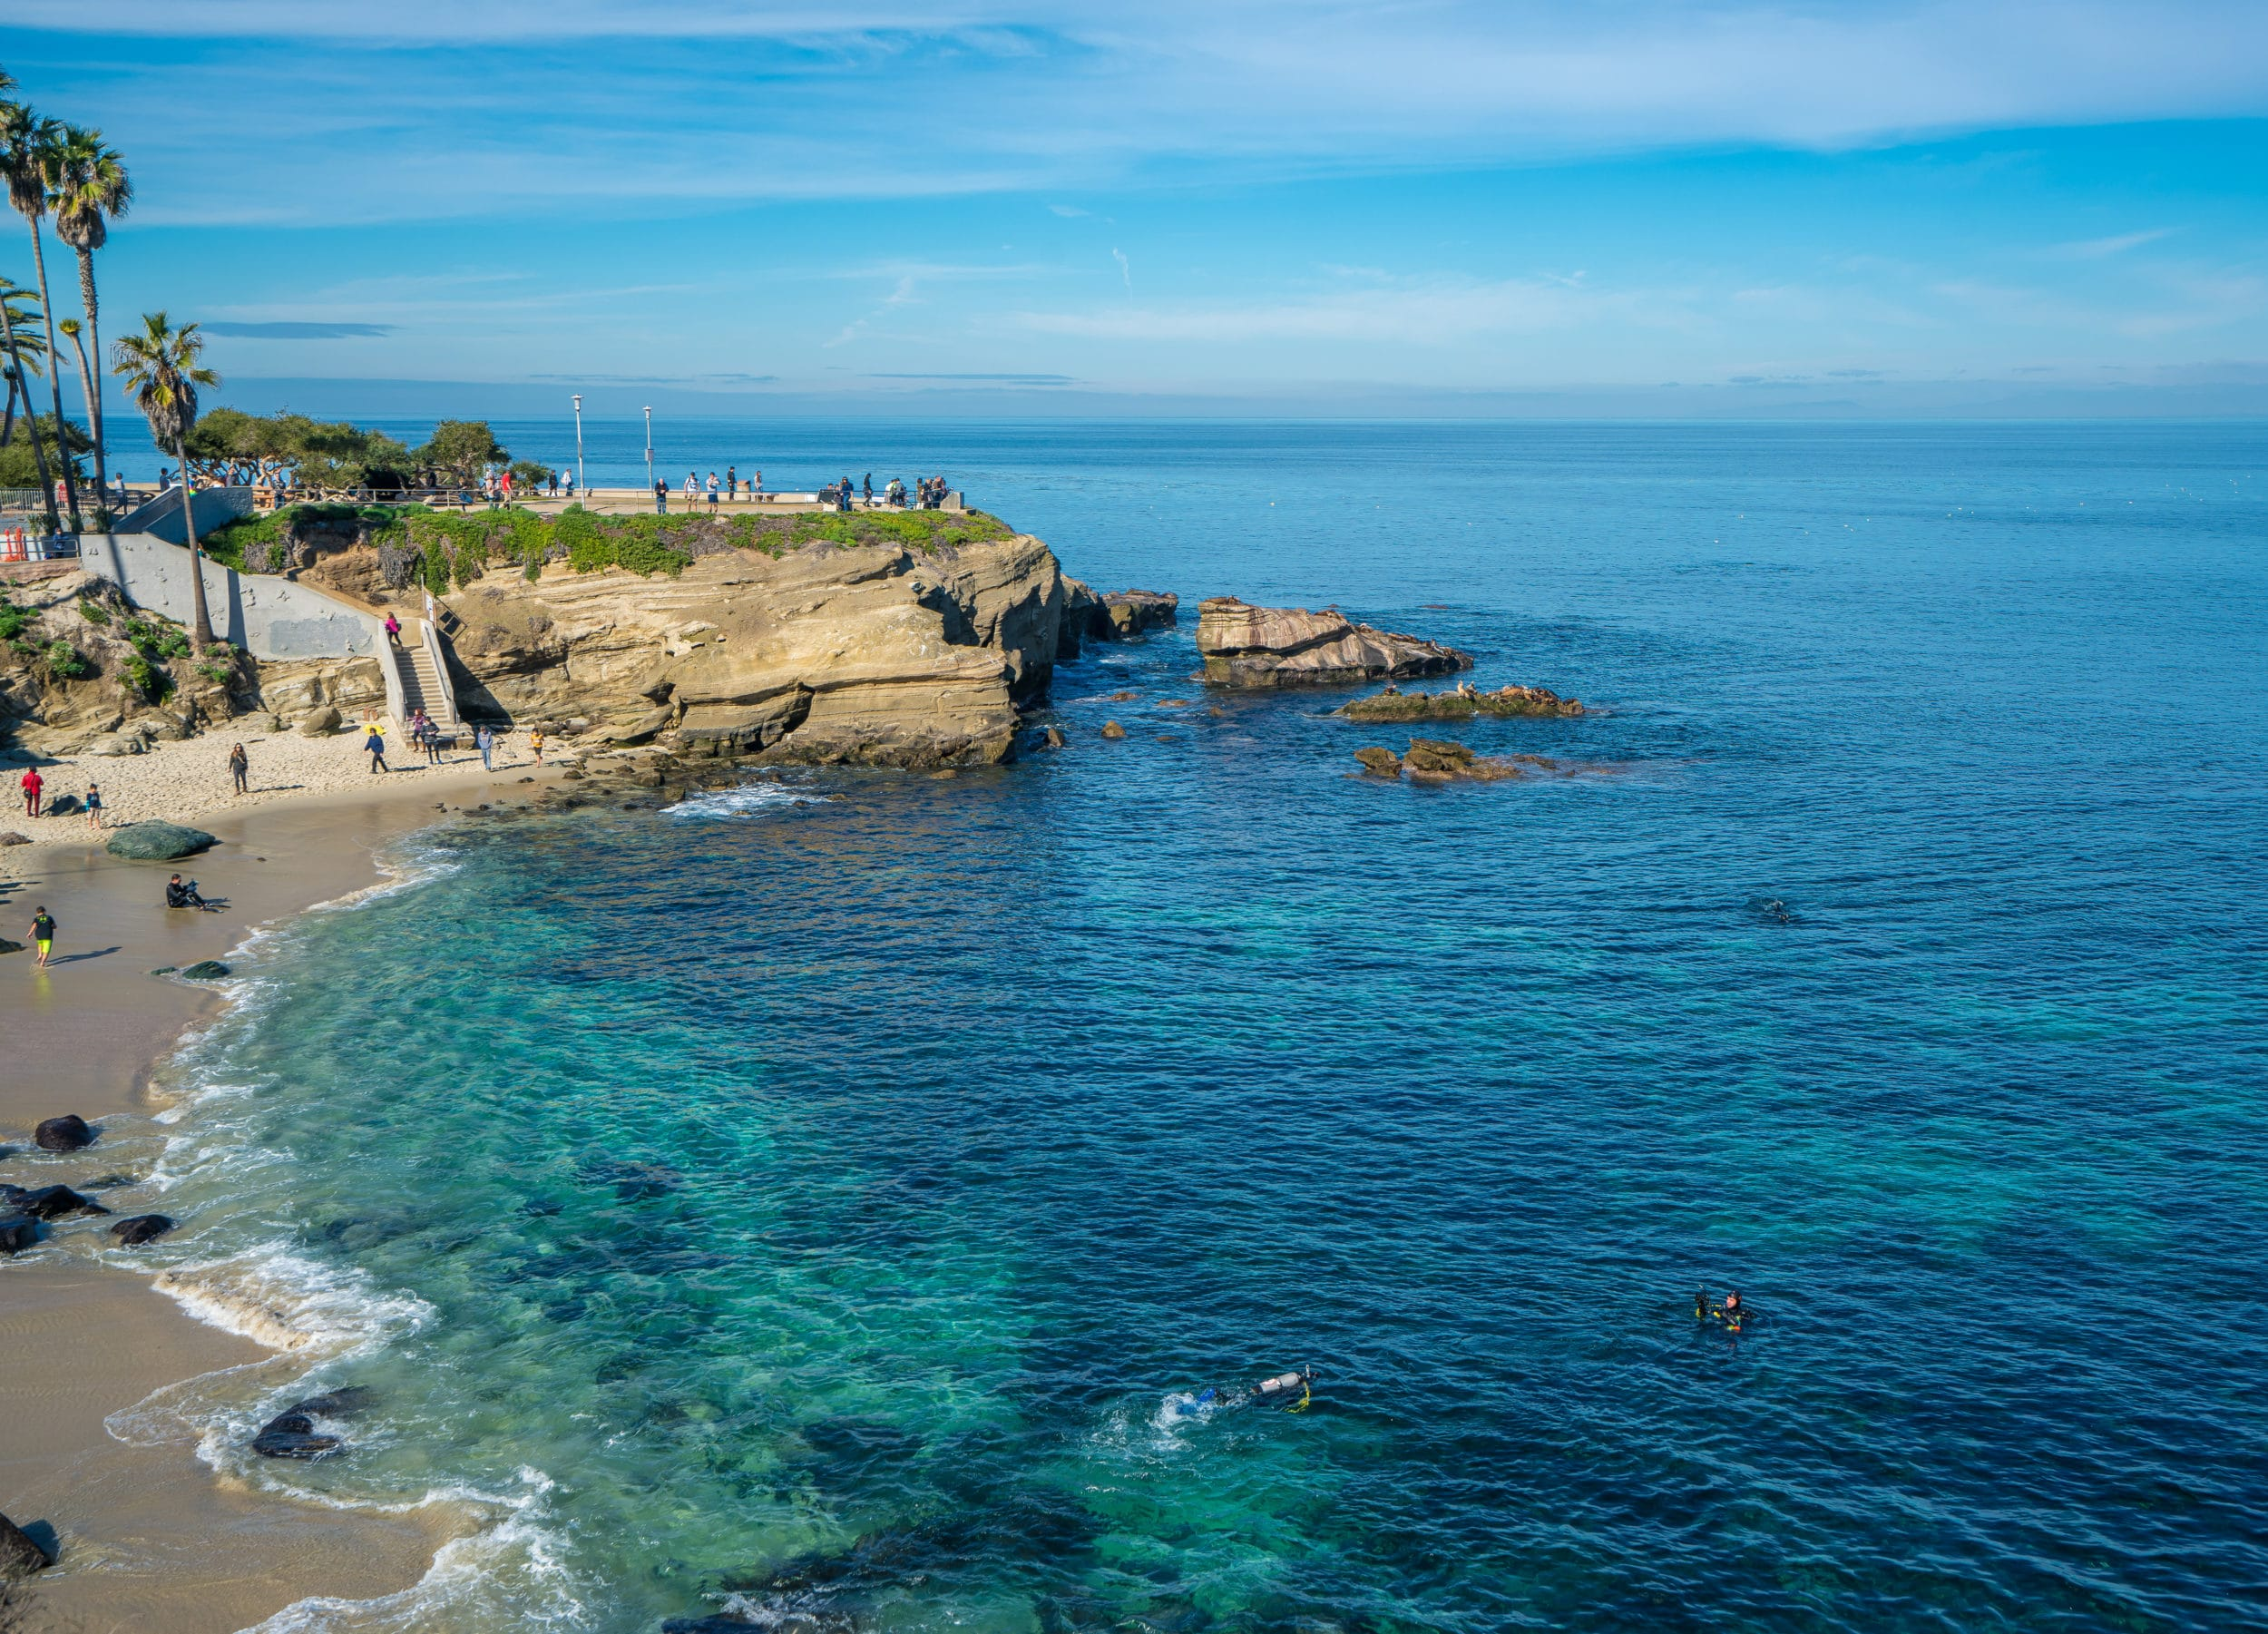 Free things to do in La Jolla: La Jolla Cove beach